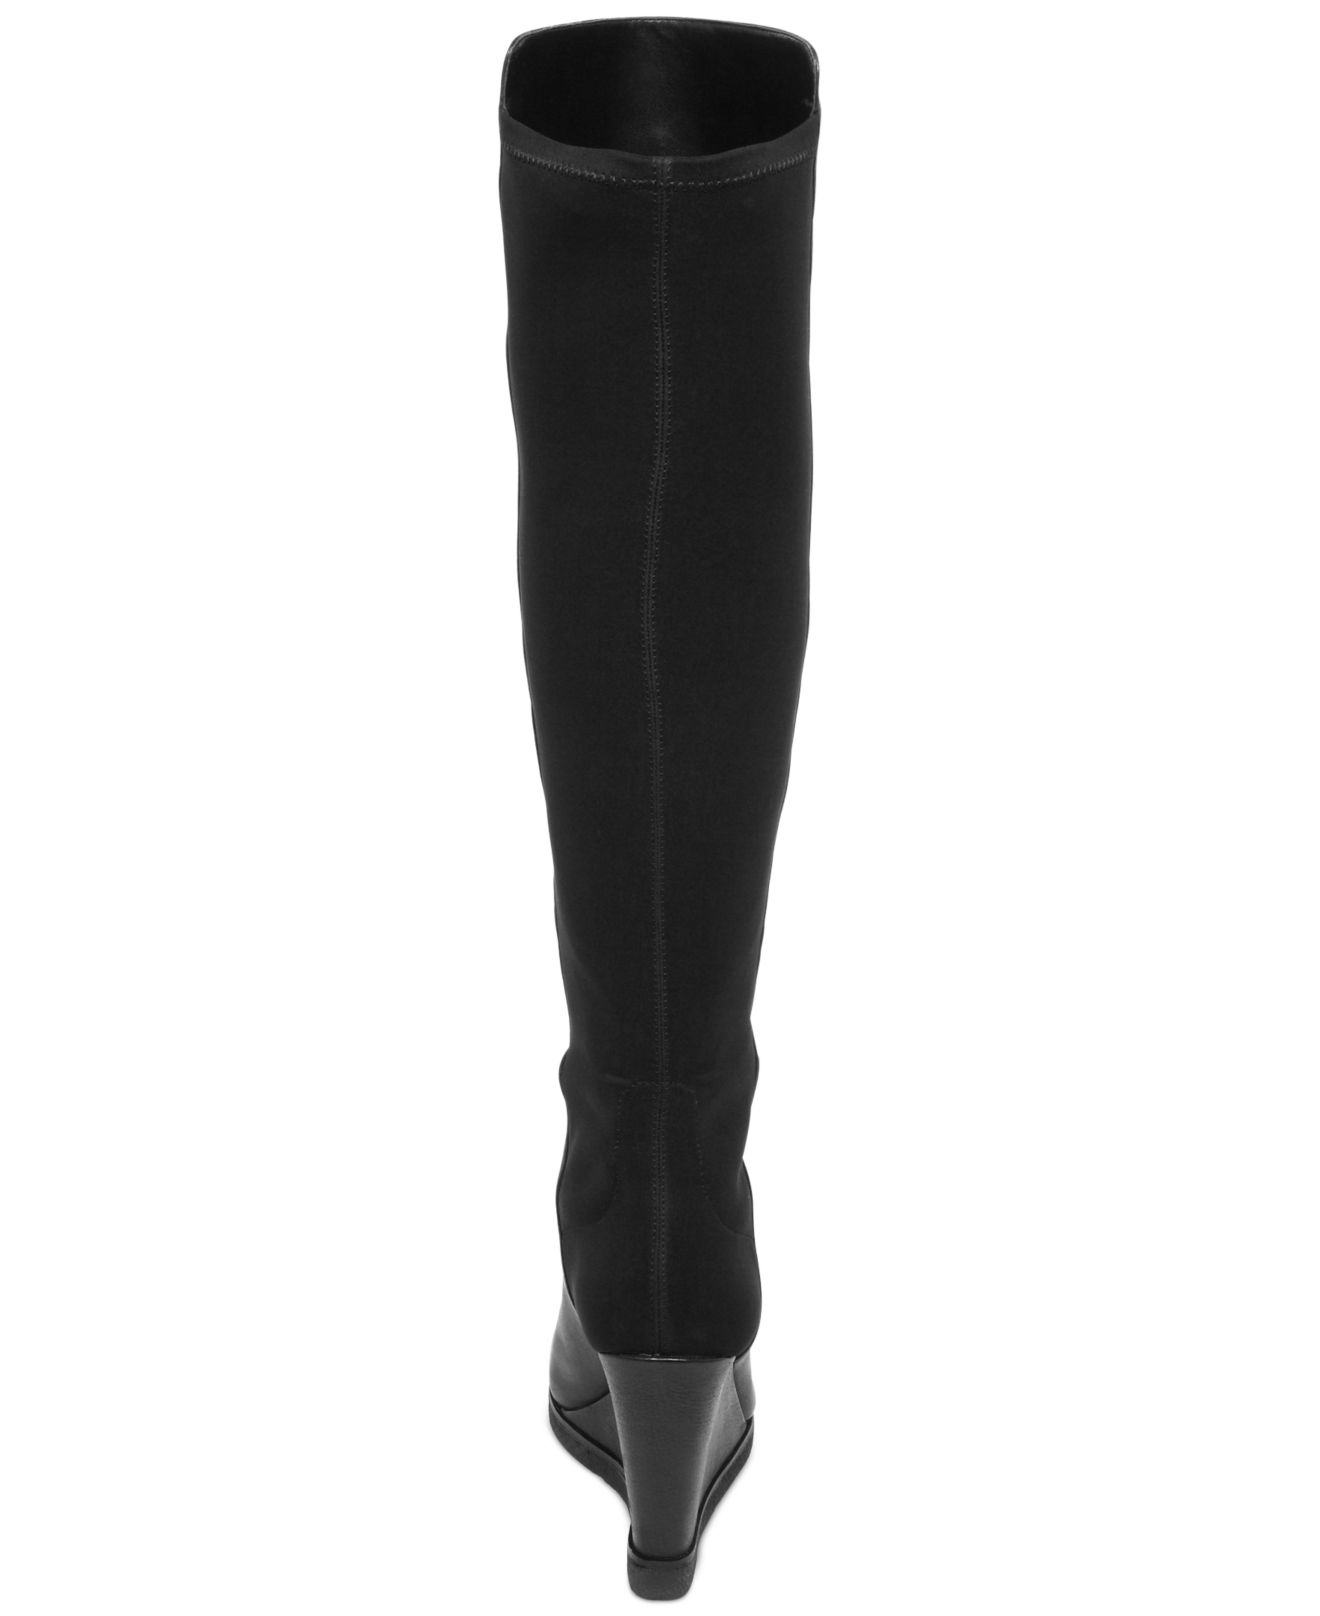 Vince camuto Kaelen Tall Wedge Boots in Black   Lyst